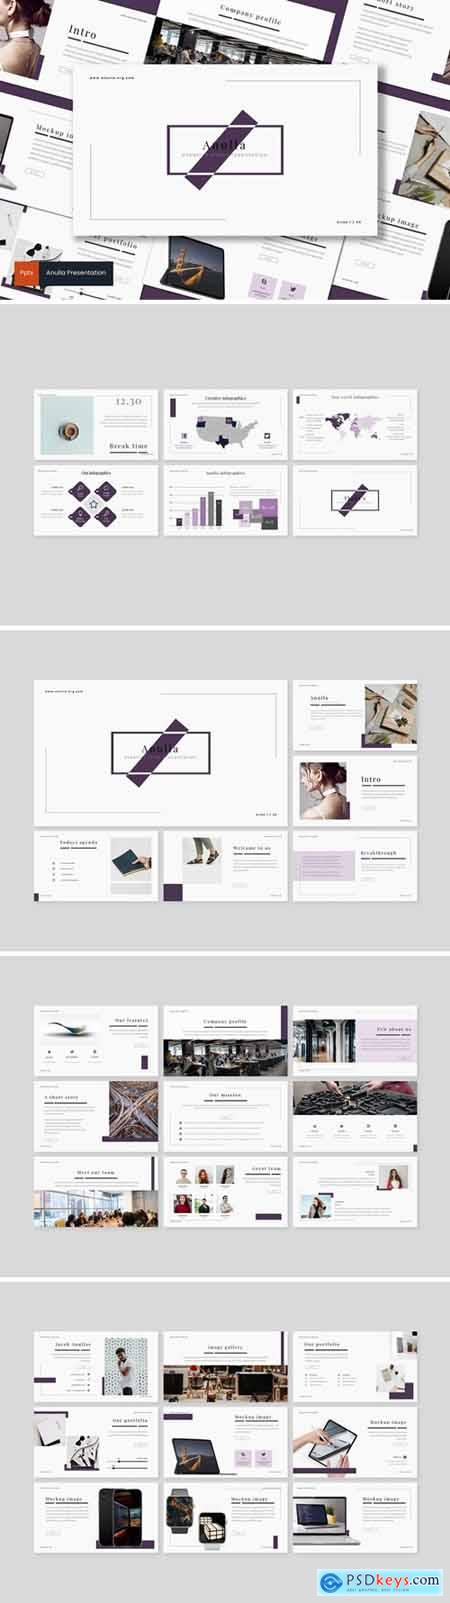 Anulla Powerpoint, Keynote and Google Slides Templates